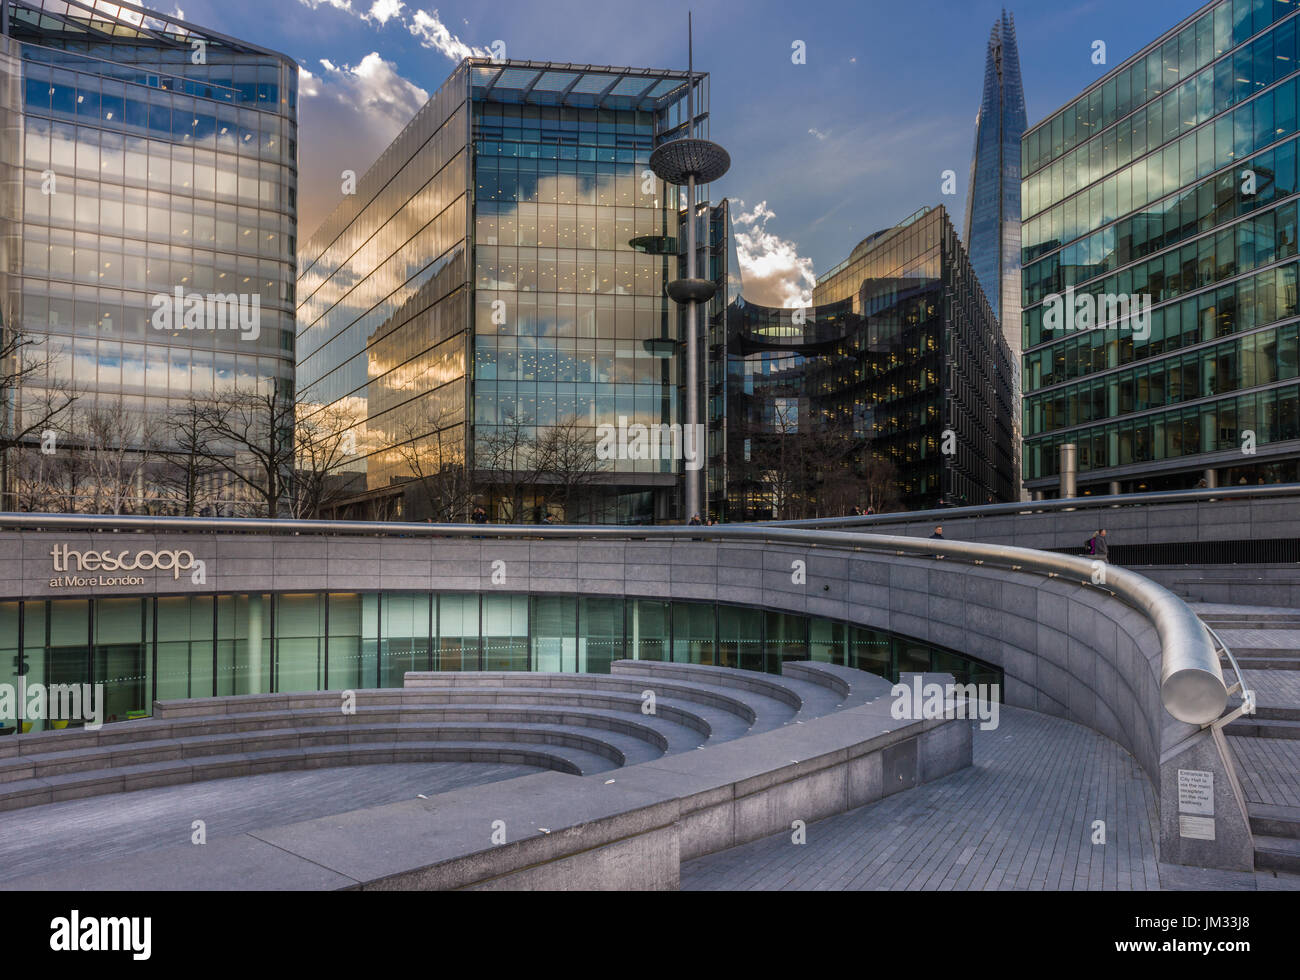 City Hall is the headquarters of the Greater London Authority, located in Southwark on the south bank of the River Thames near Tower Bridge. - Stock Image